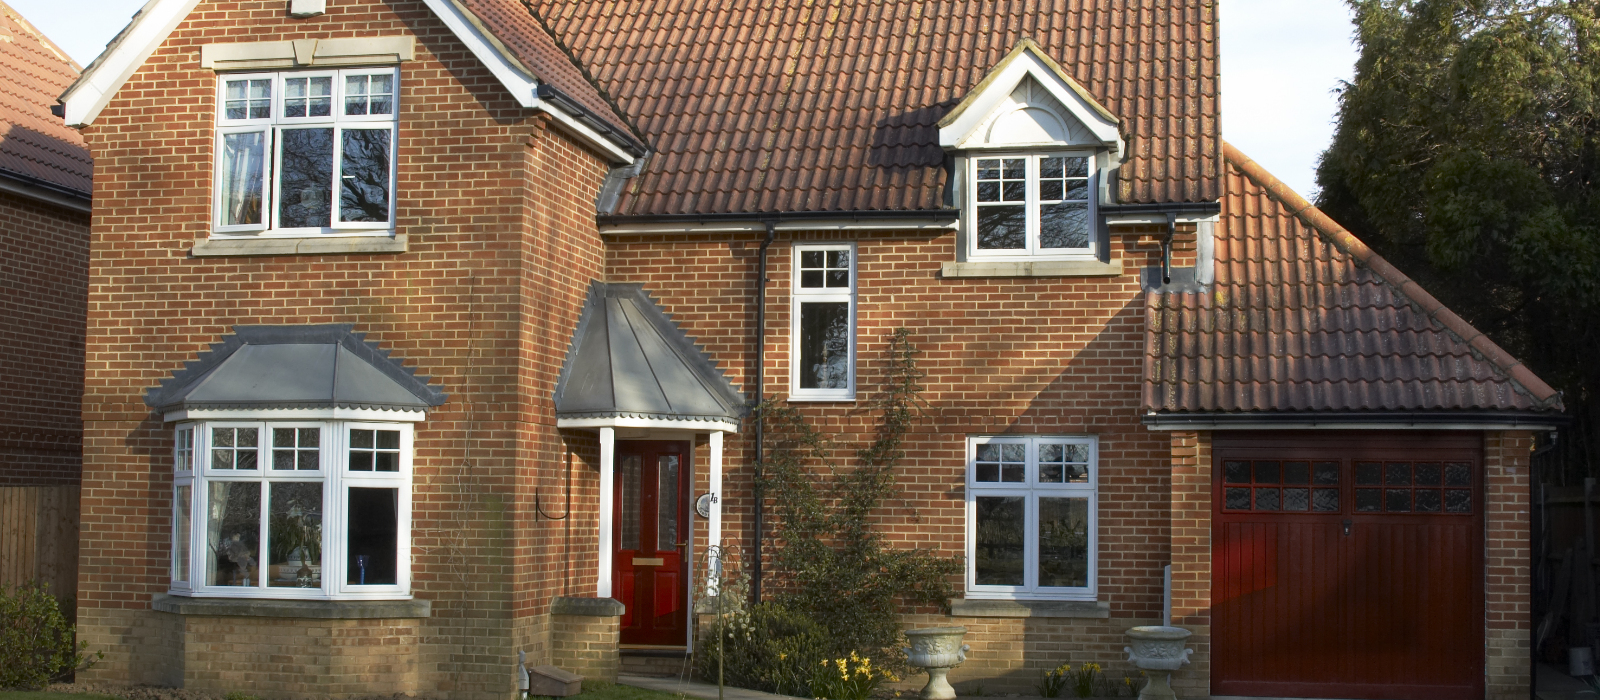 Give your home a new lease of life